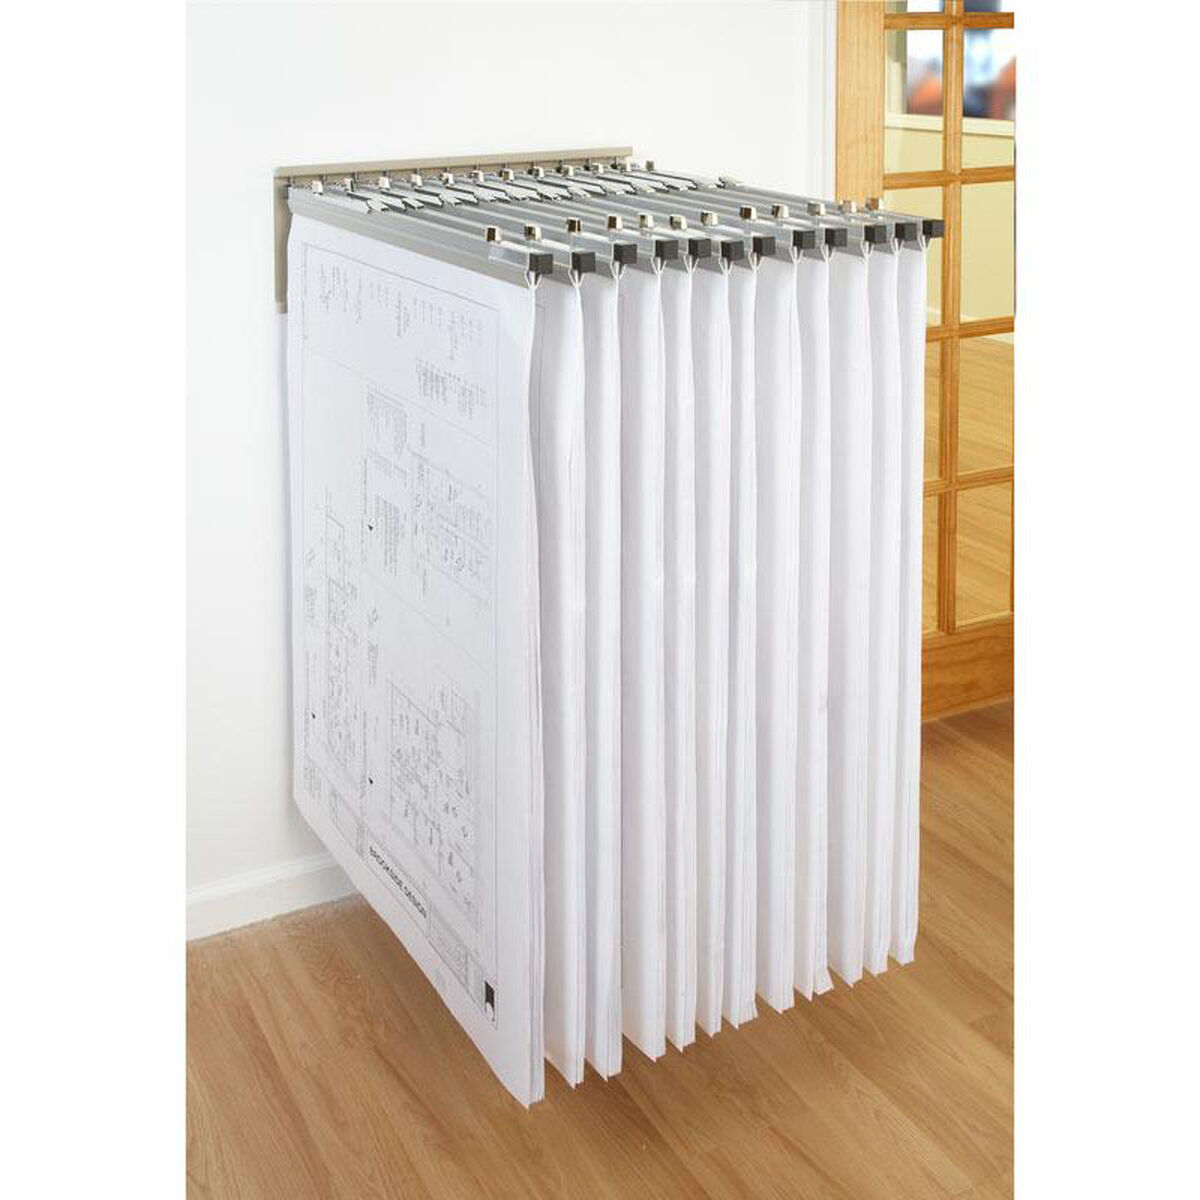 Blueprint storage wall rack wrwh bizchair our blueprint storage pivot wall rack with 12 chrome pivot hangers is on sale now malvernweather Choice Image